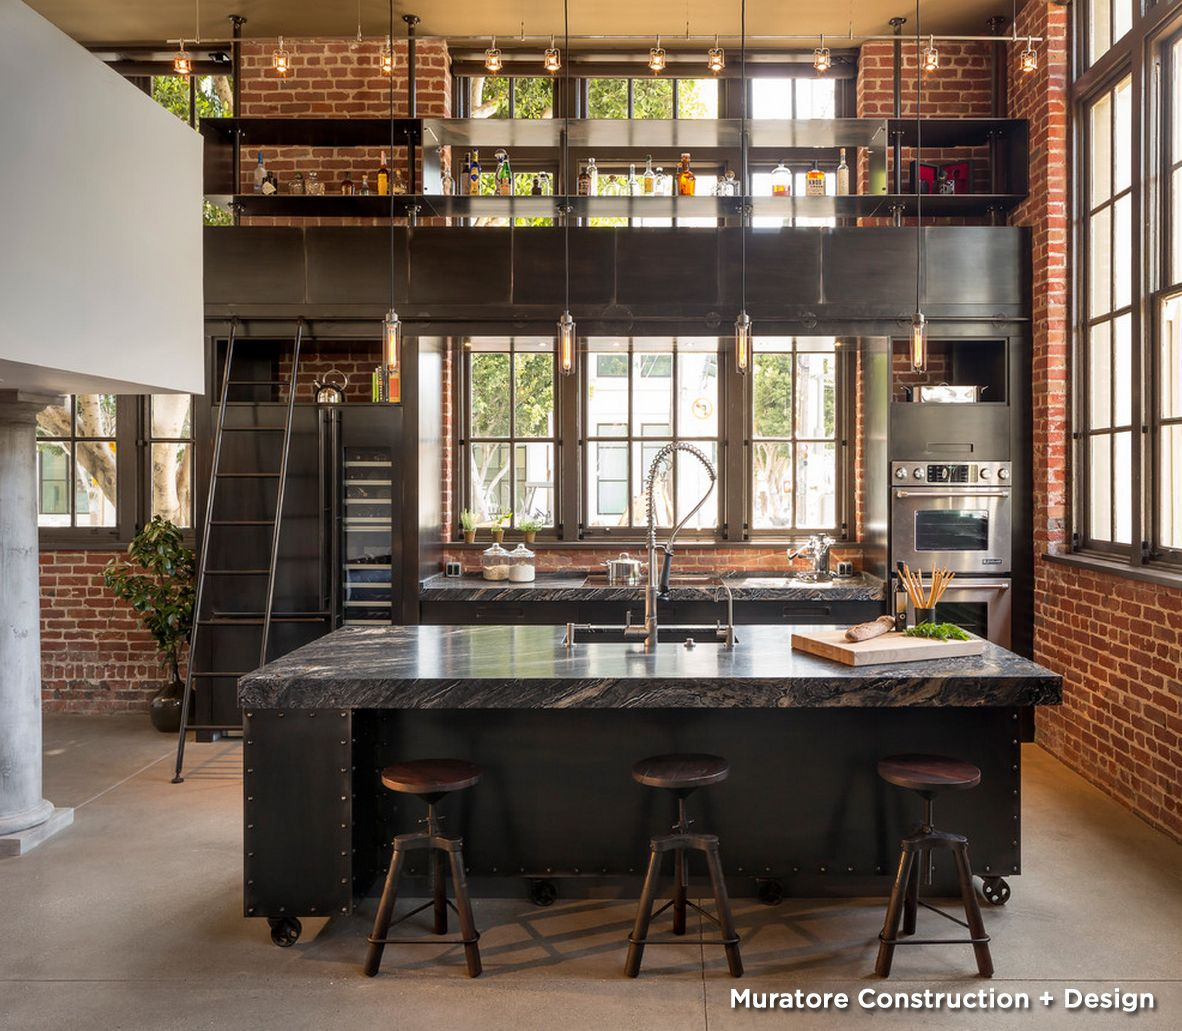 Kitchen construction design and layout - Find This Pin And More On Life Industrial Kitchen By Muratore Construction Design